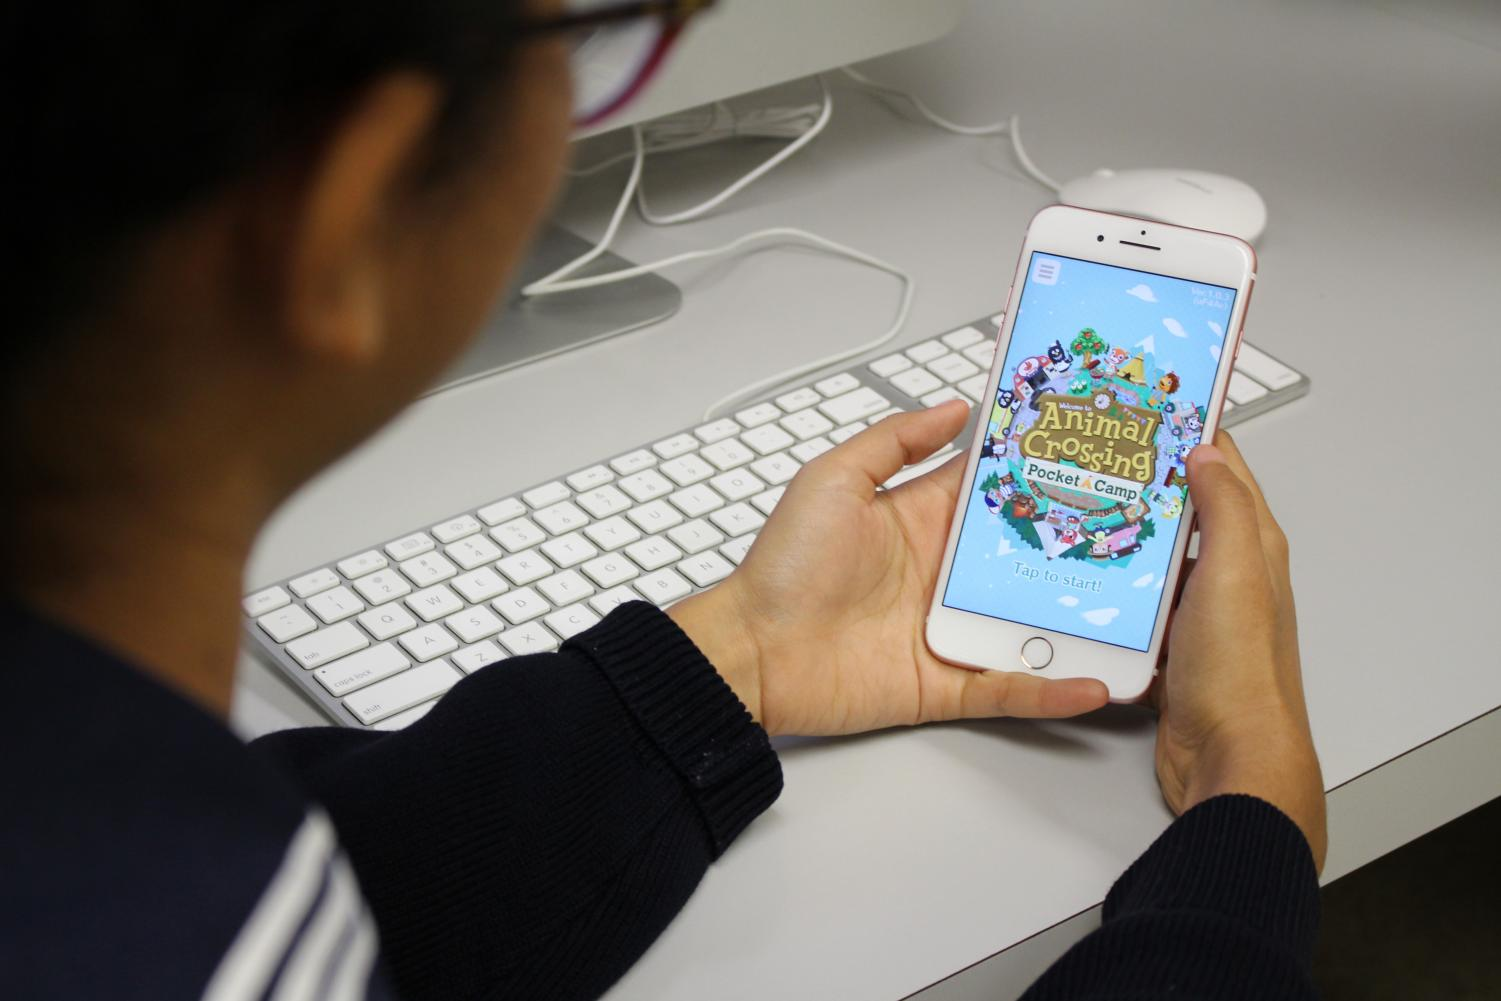 Junior Jasmine Matsumoto readies her Pocket Campers app. Photo by Noe Nekotani.